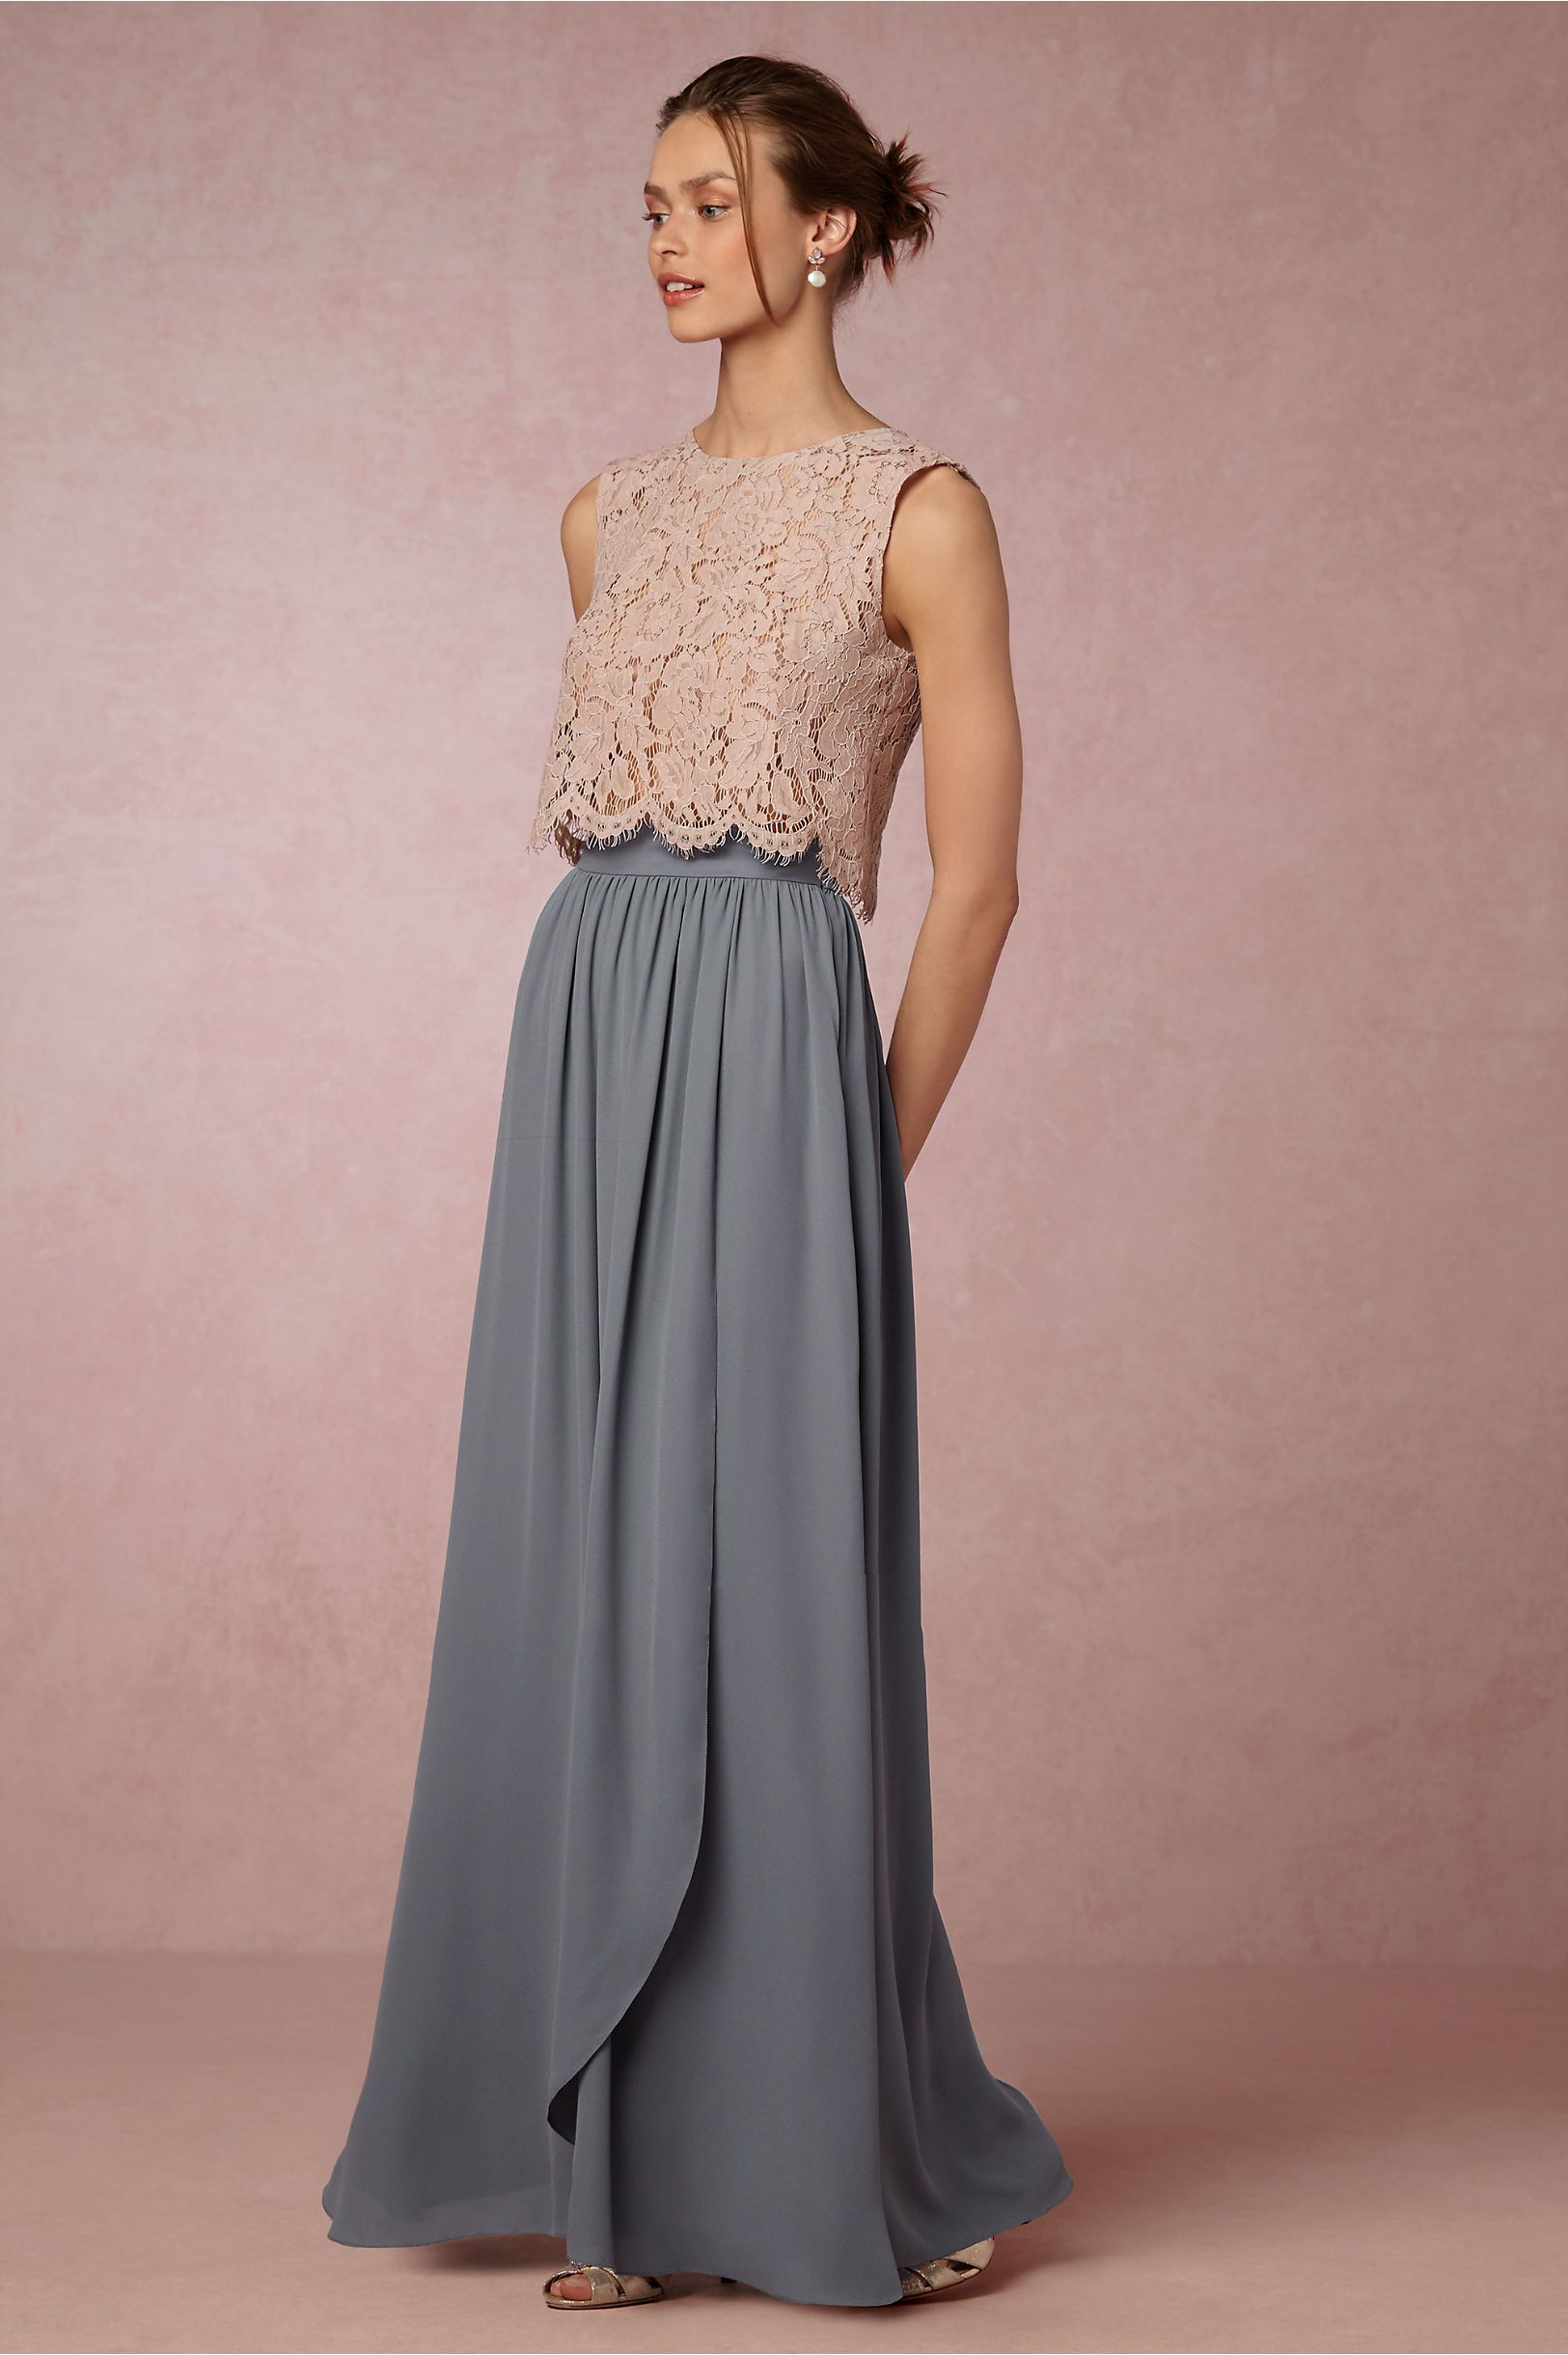 975f6a79c7167 BHLDN Cleo Top   Jane Skirt in Bridesmaids View All Dresses at BHLDN ...